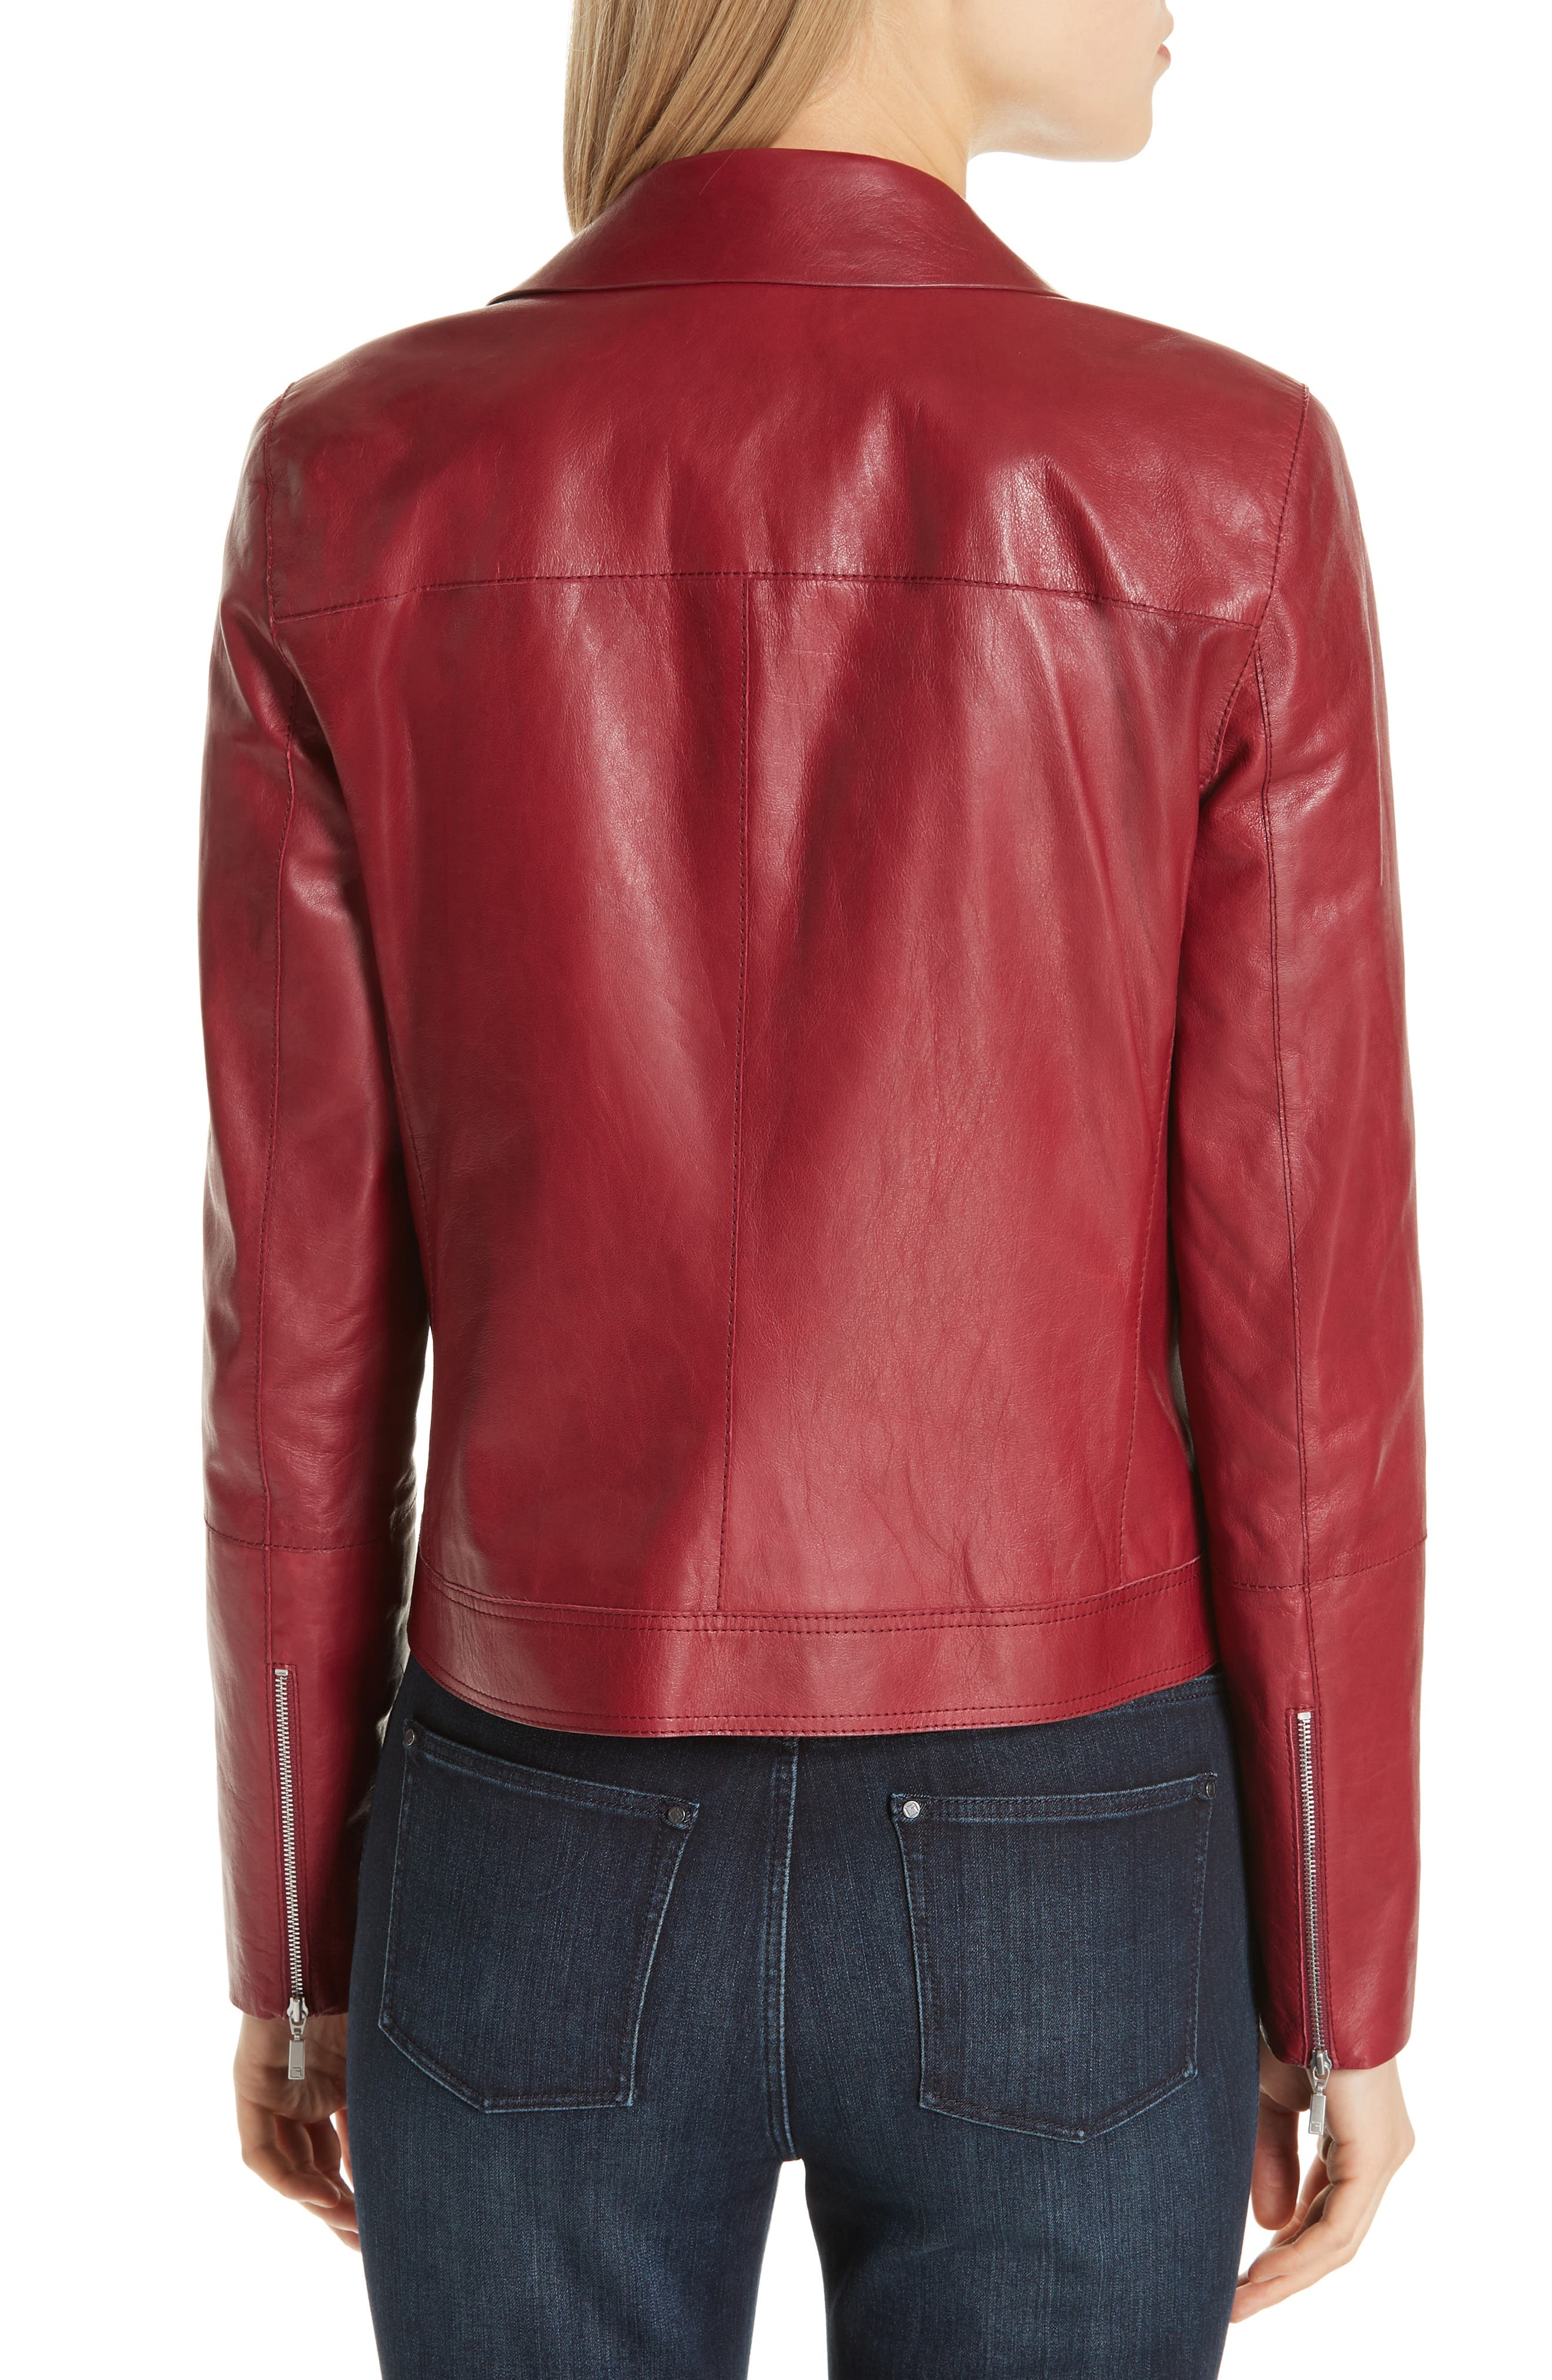 LAFAYETTE 148 NEW YORK, Marykate Leather Moto Jacket, Alternate thumbnail 2, color, 600